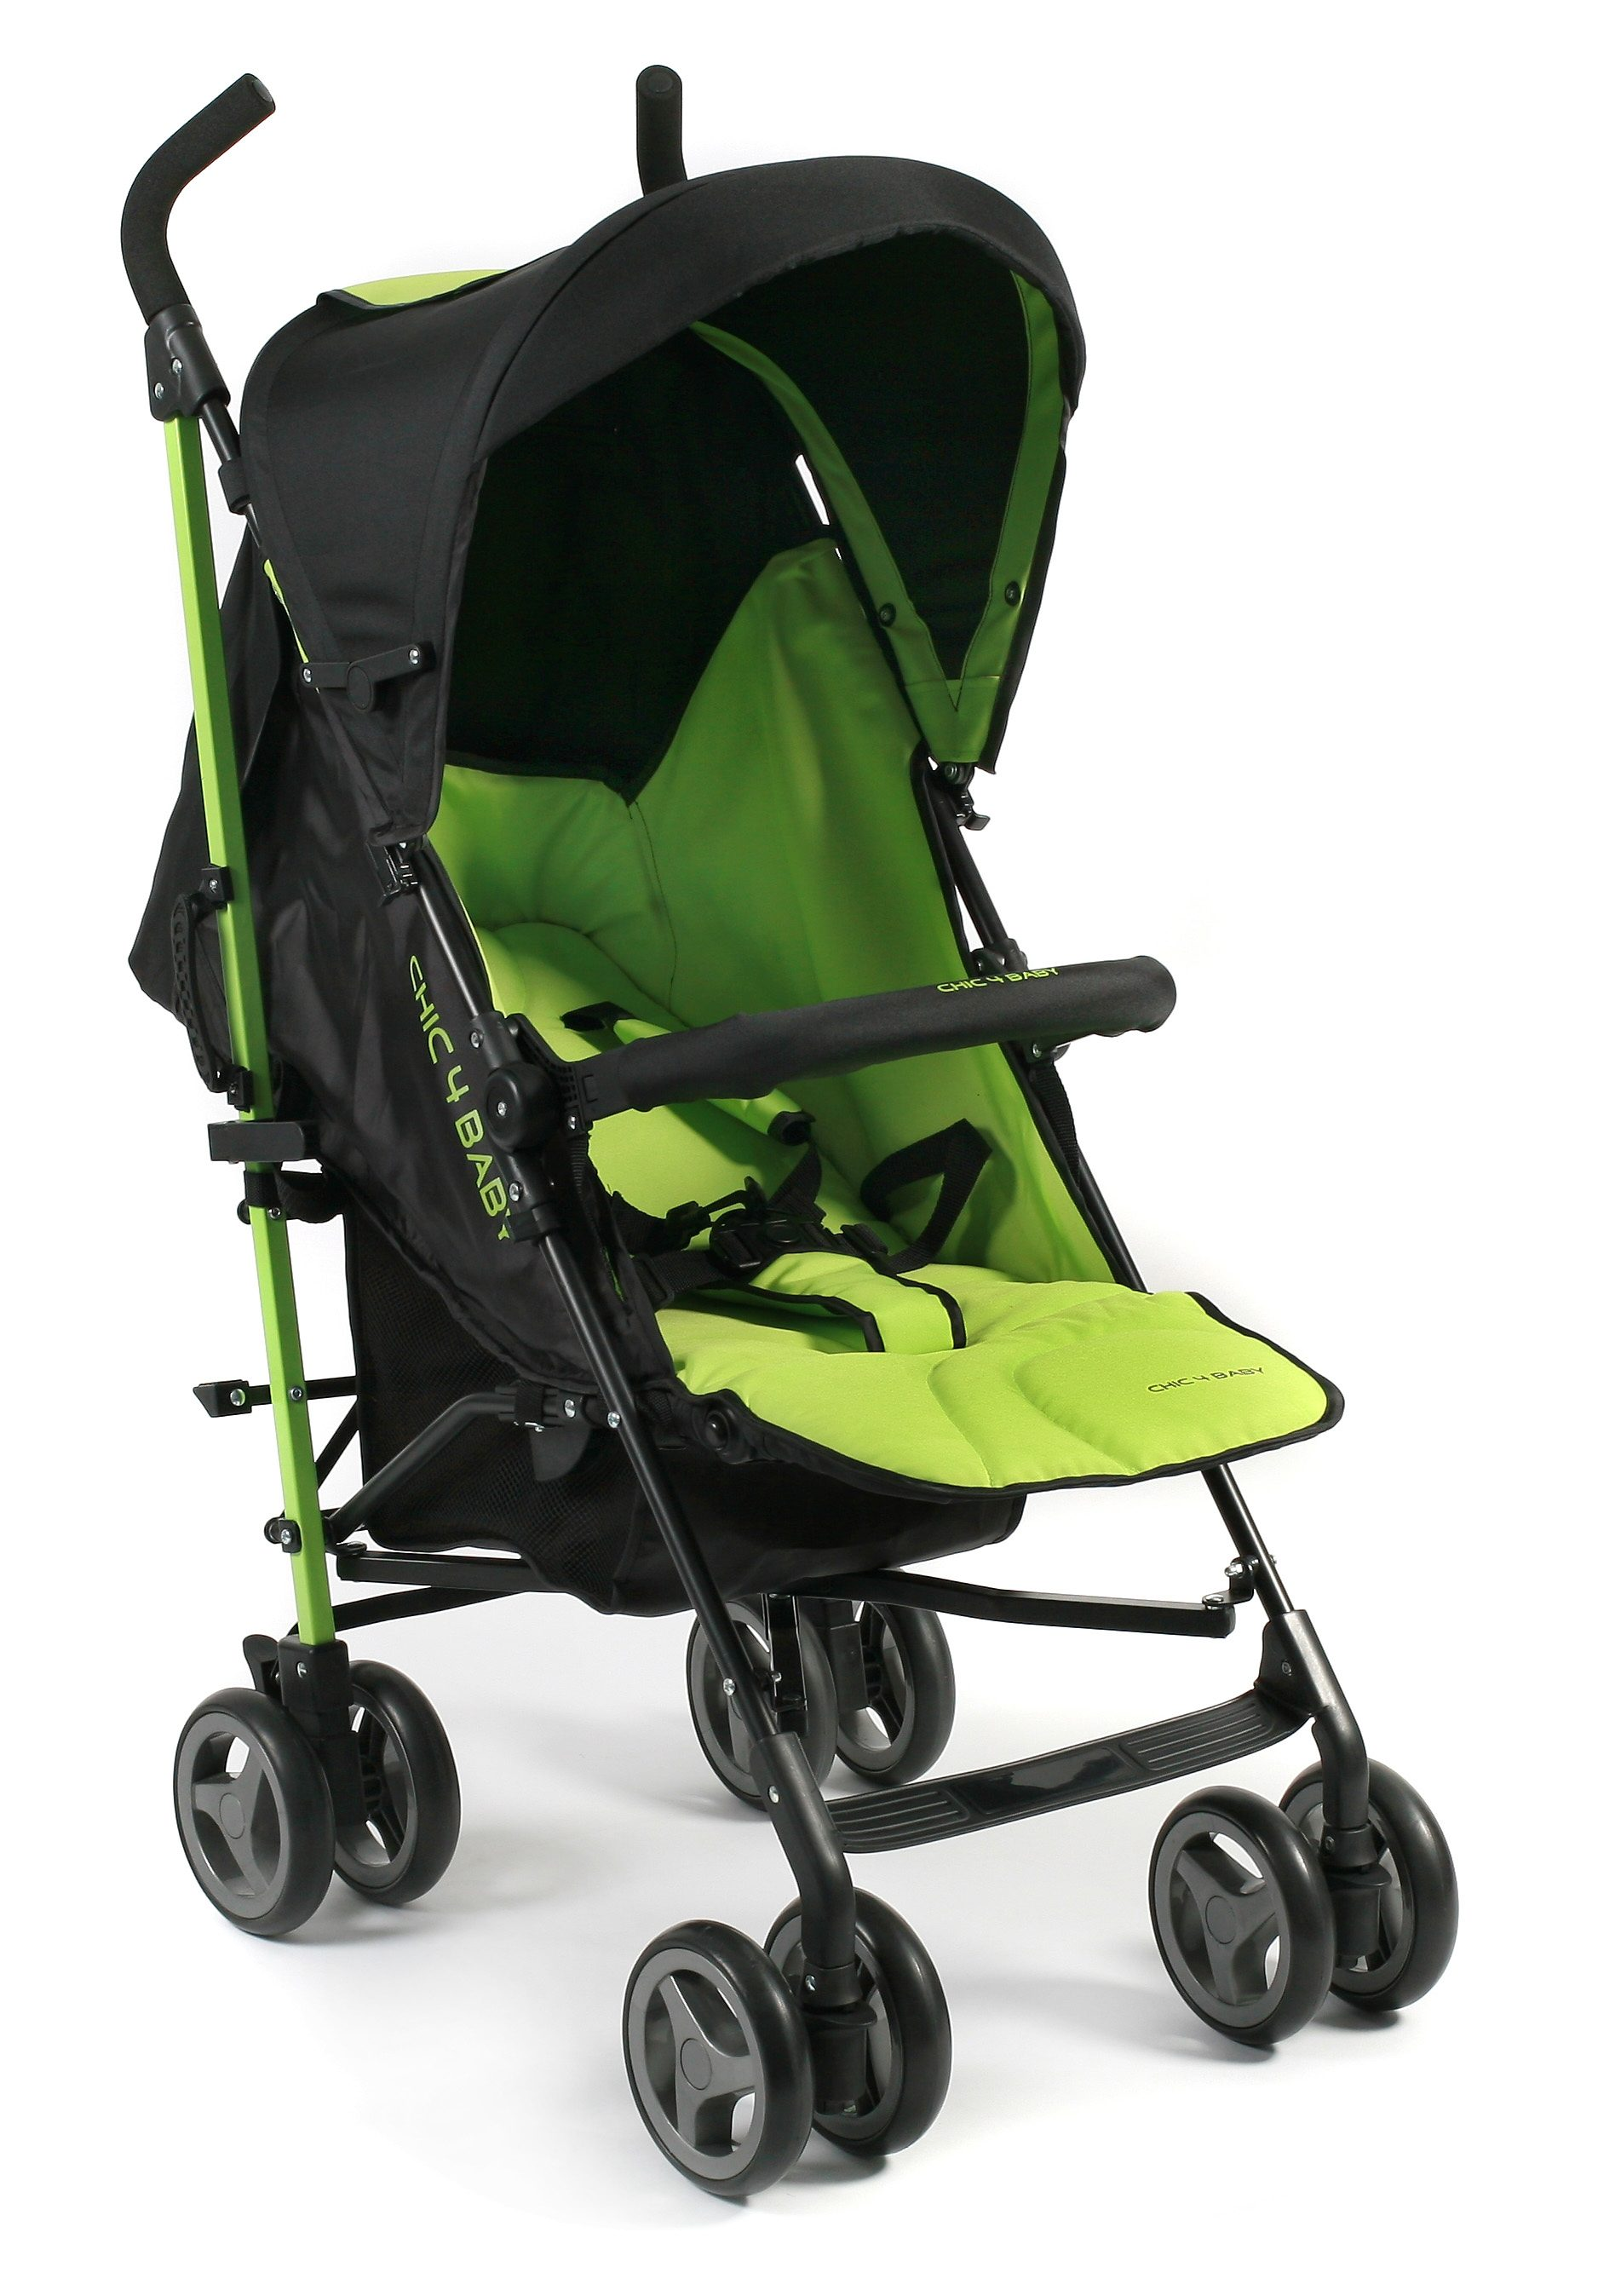 CHIC4BABY, Kinder-Buggy »Lido, lemongreen«